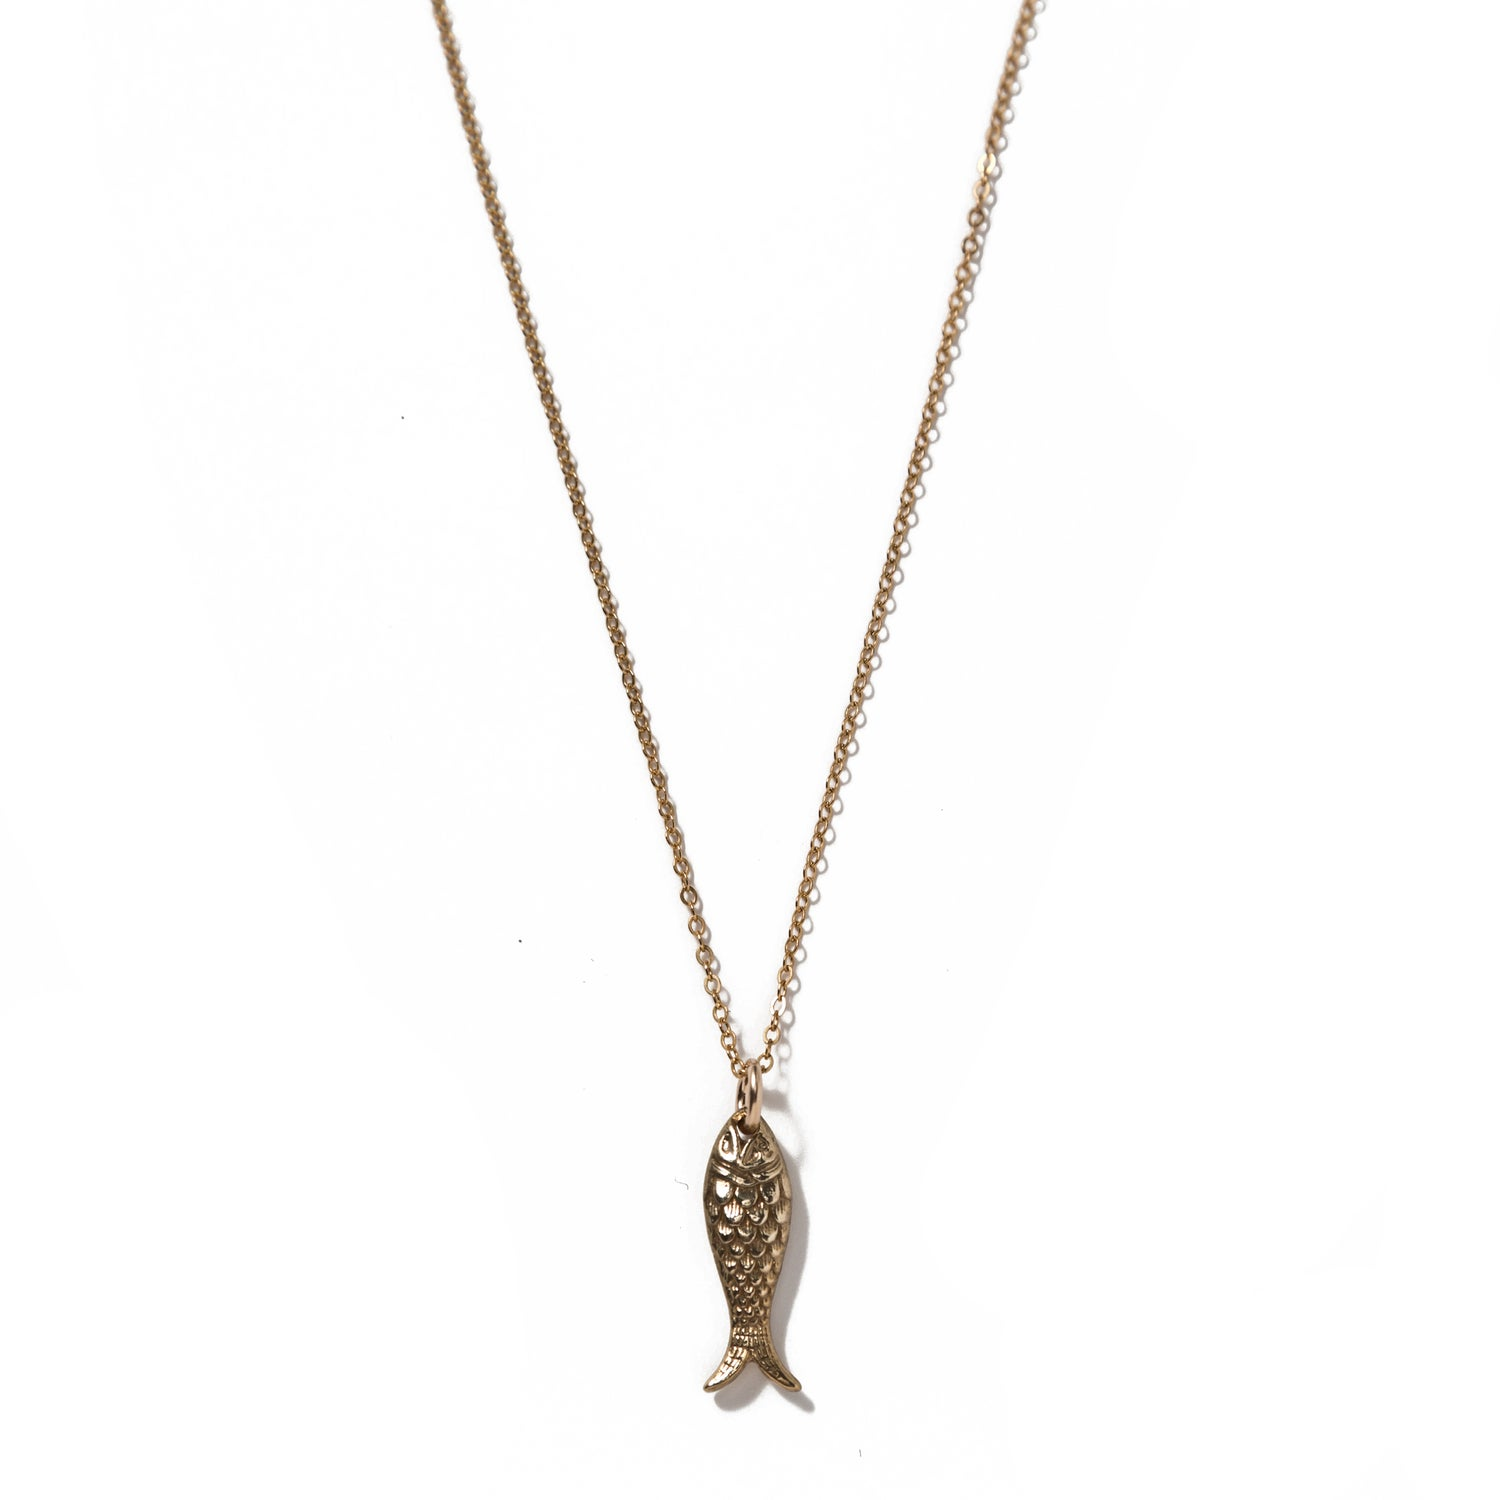 Image of Gold Fish charm